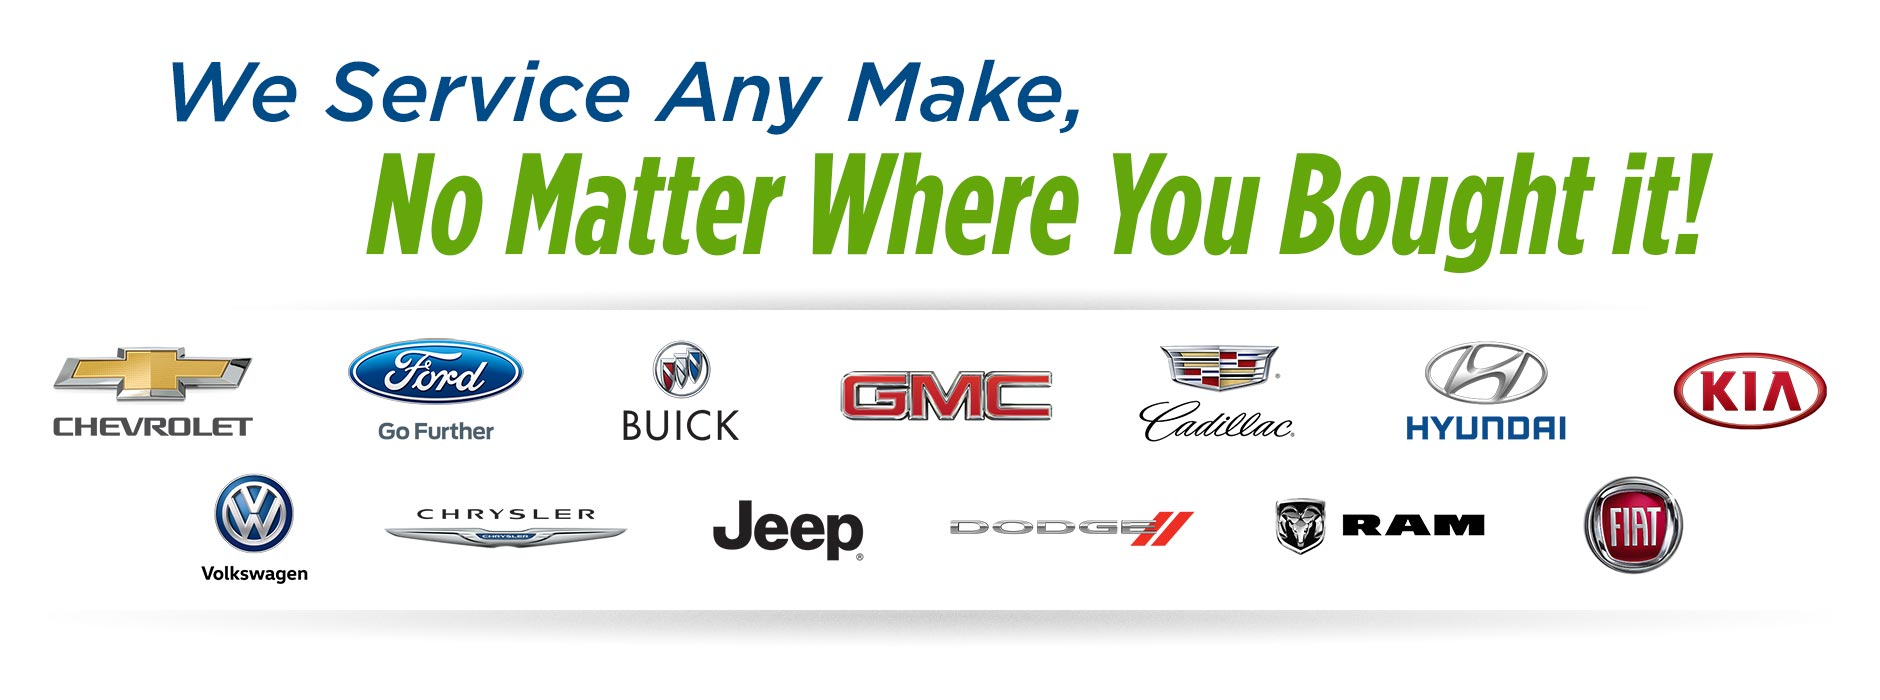 We Service Any Brand, No Matter Where You Bought it!